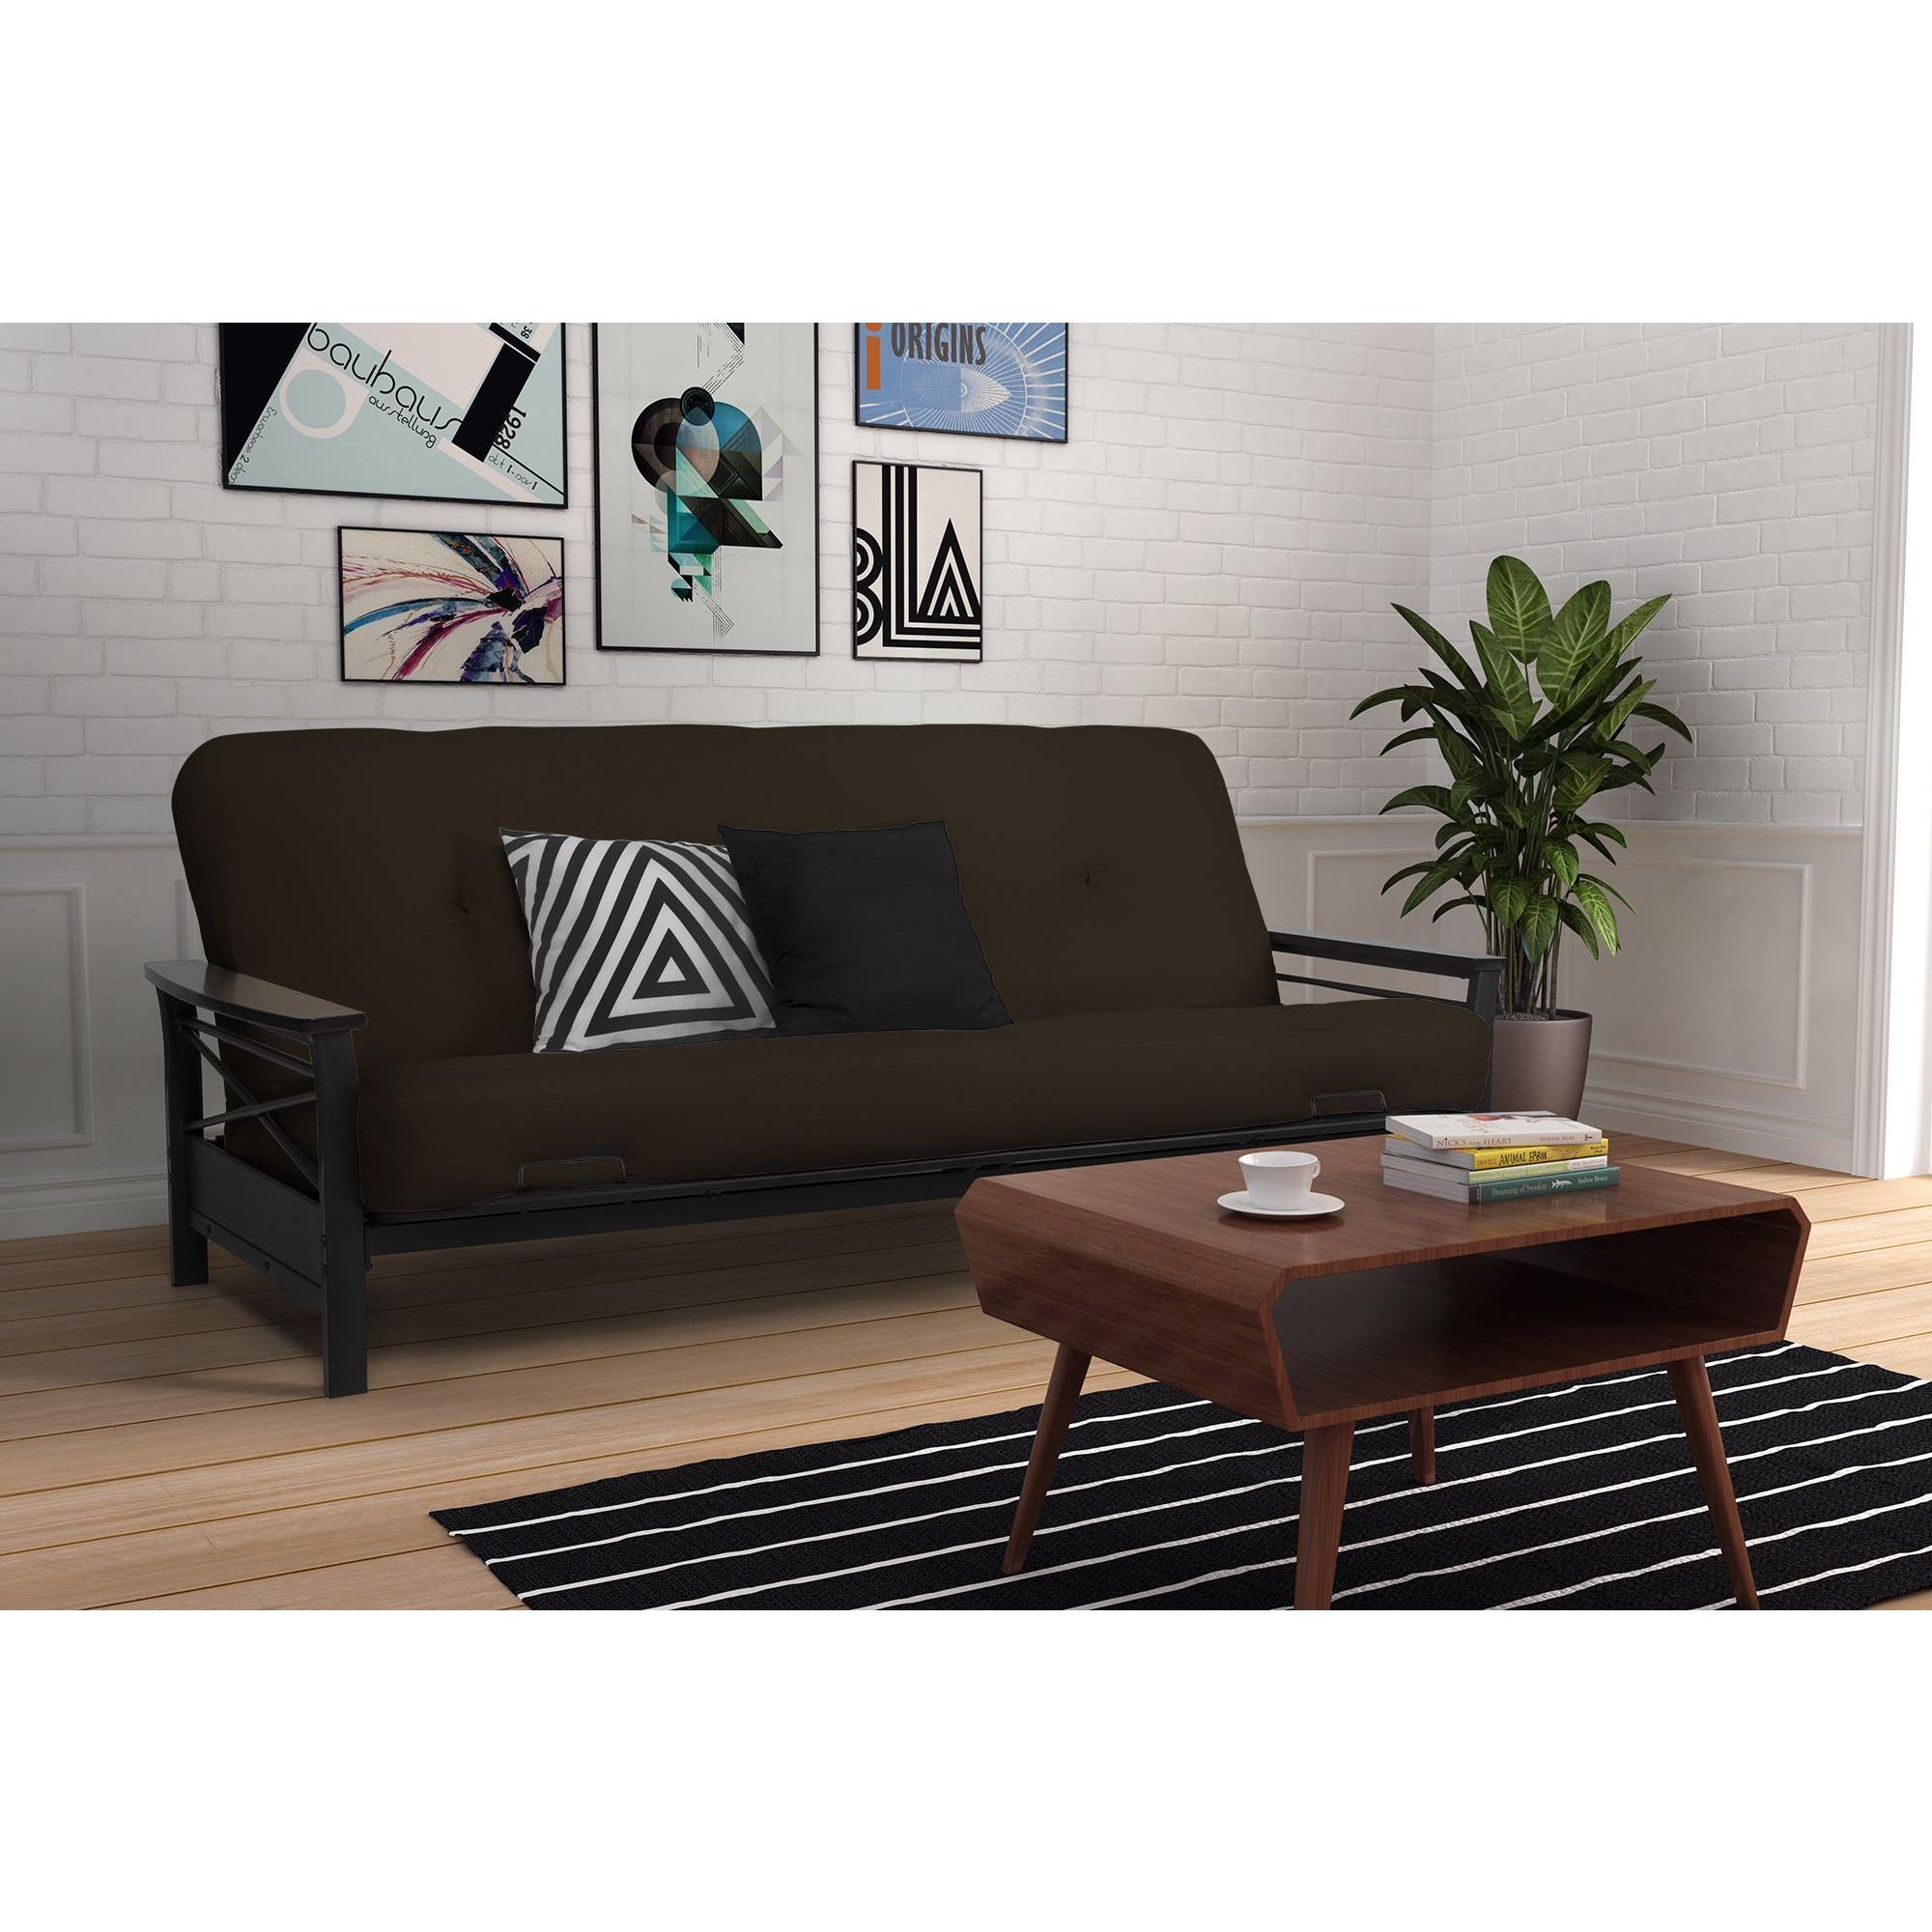 Dhp Nadine Metal Futon Frame With Espresso Wood Armrests Free Shipping Today